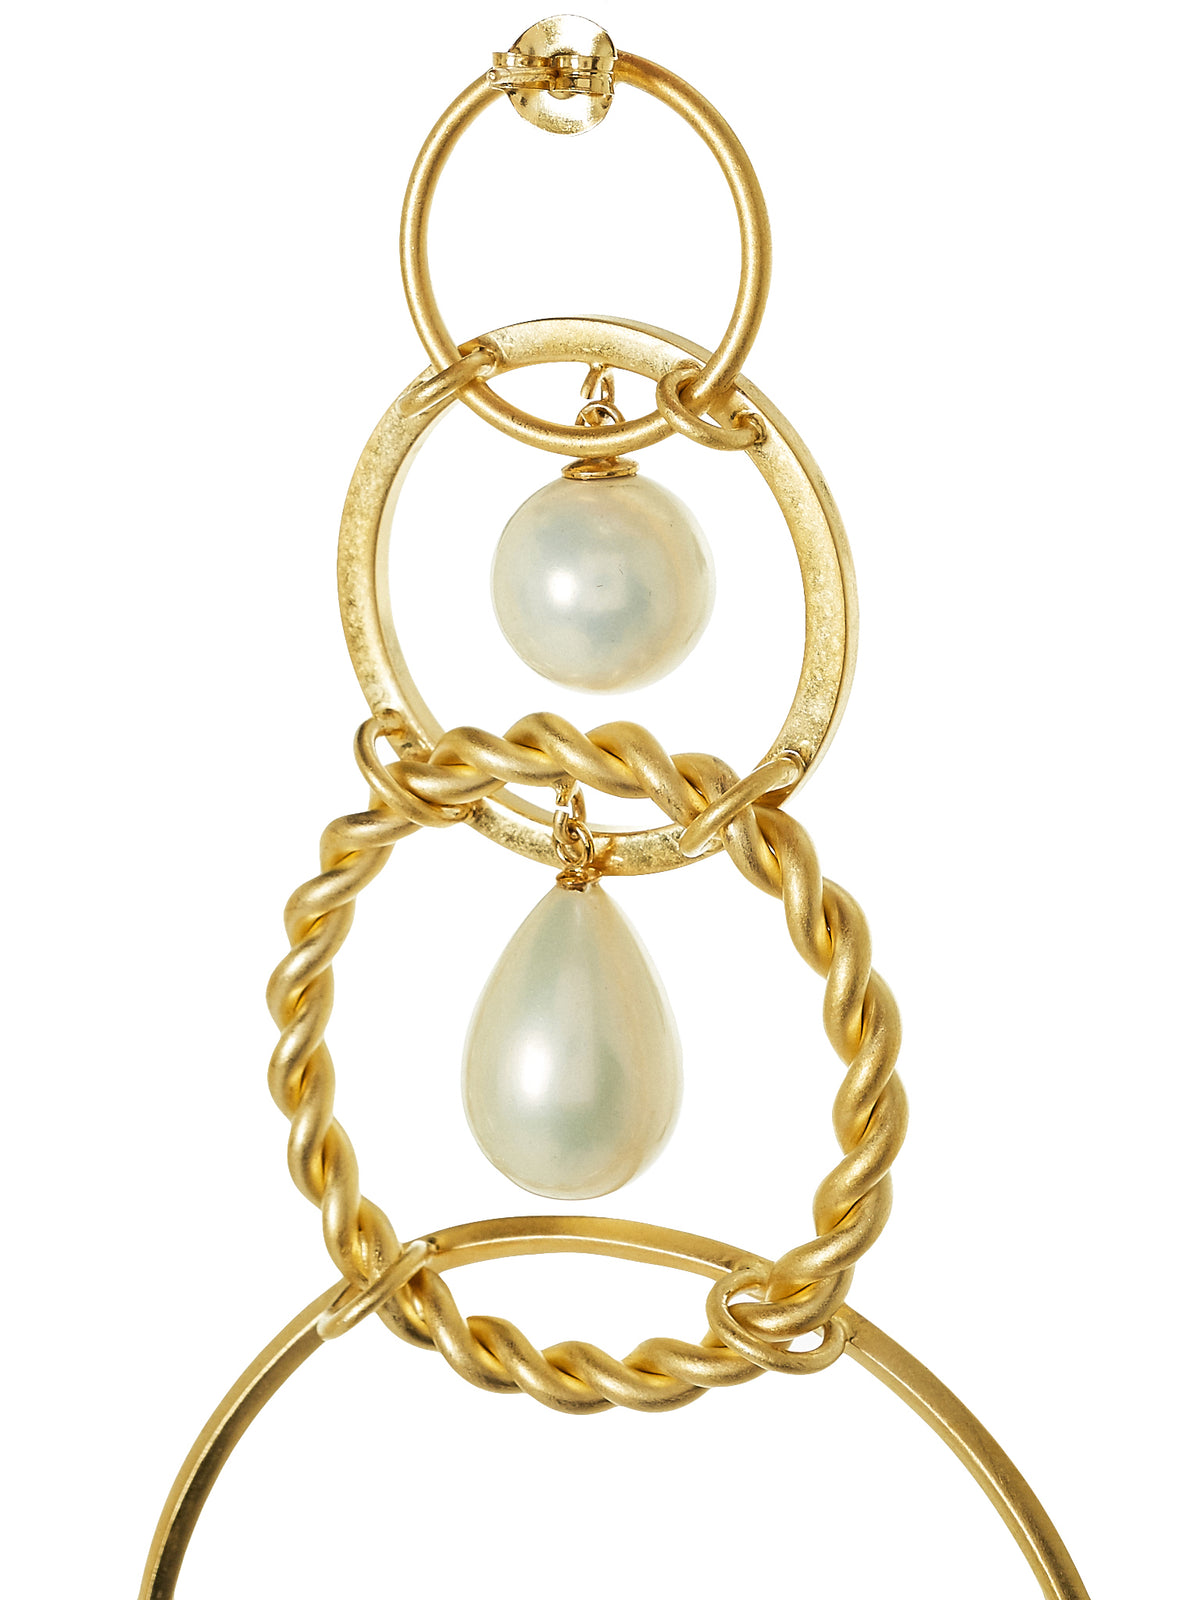 Tiered Loop Earrings (BOLOOP-S15-FBG-GOLD)